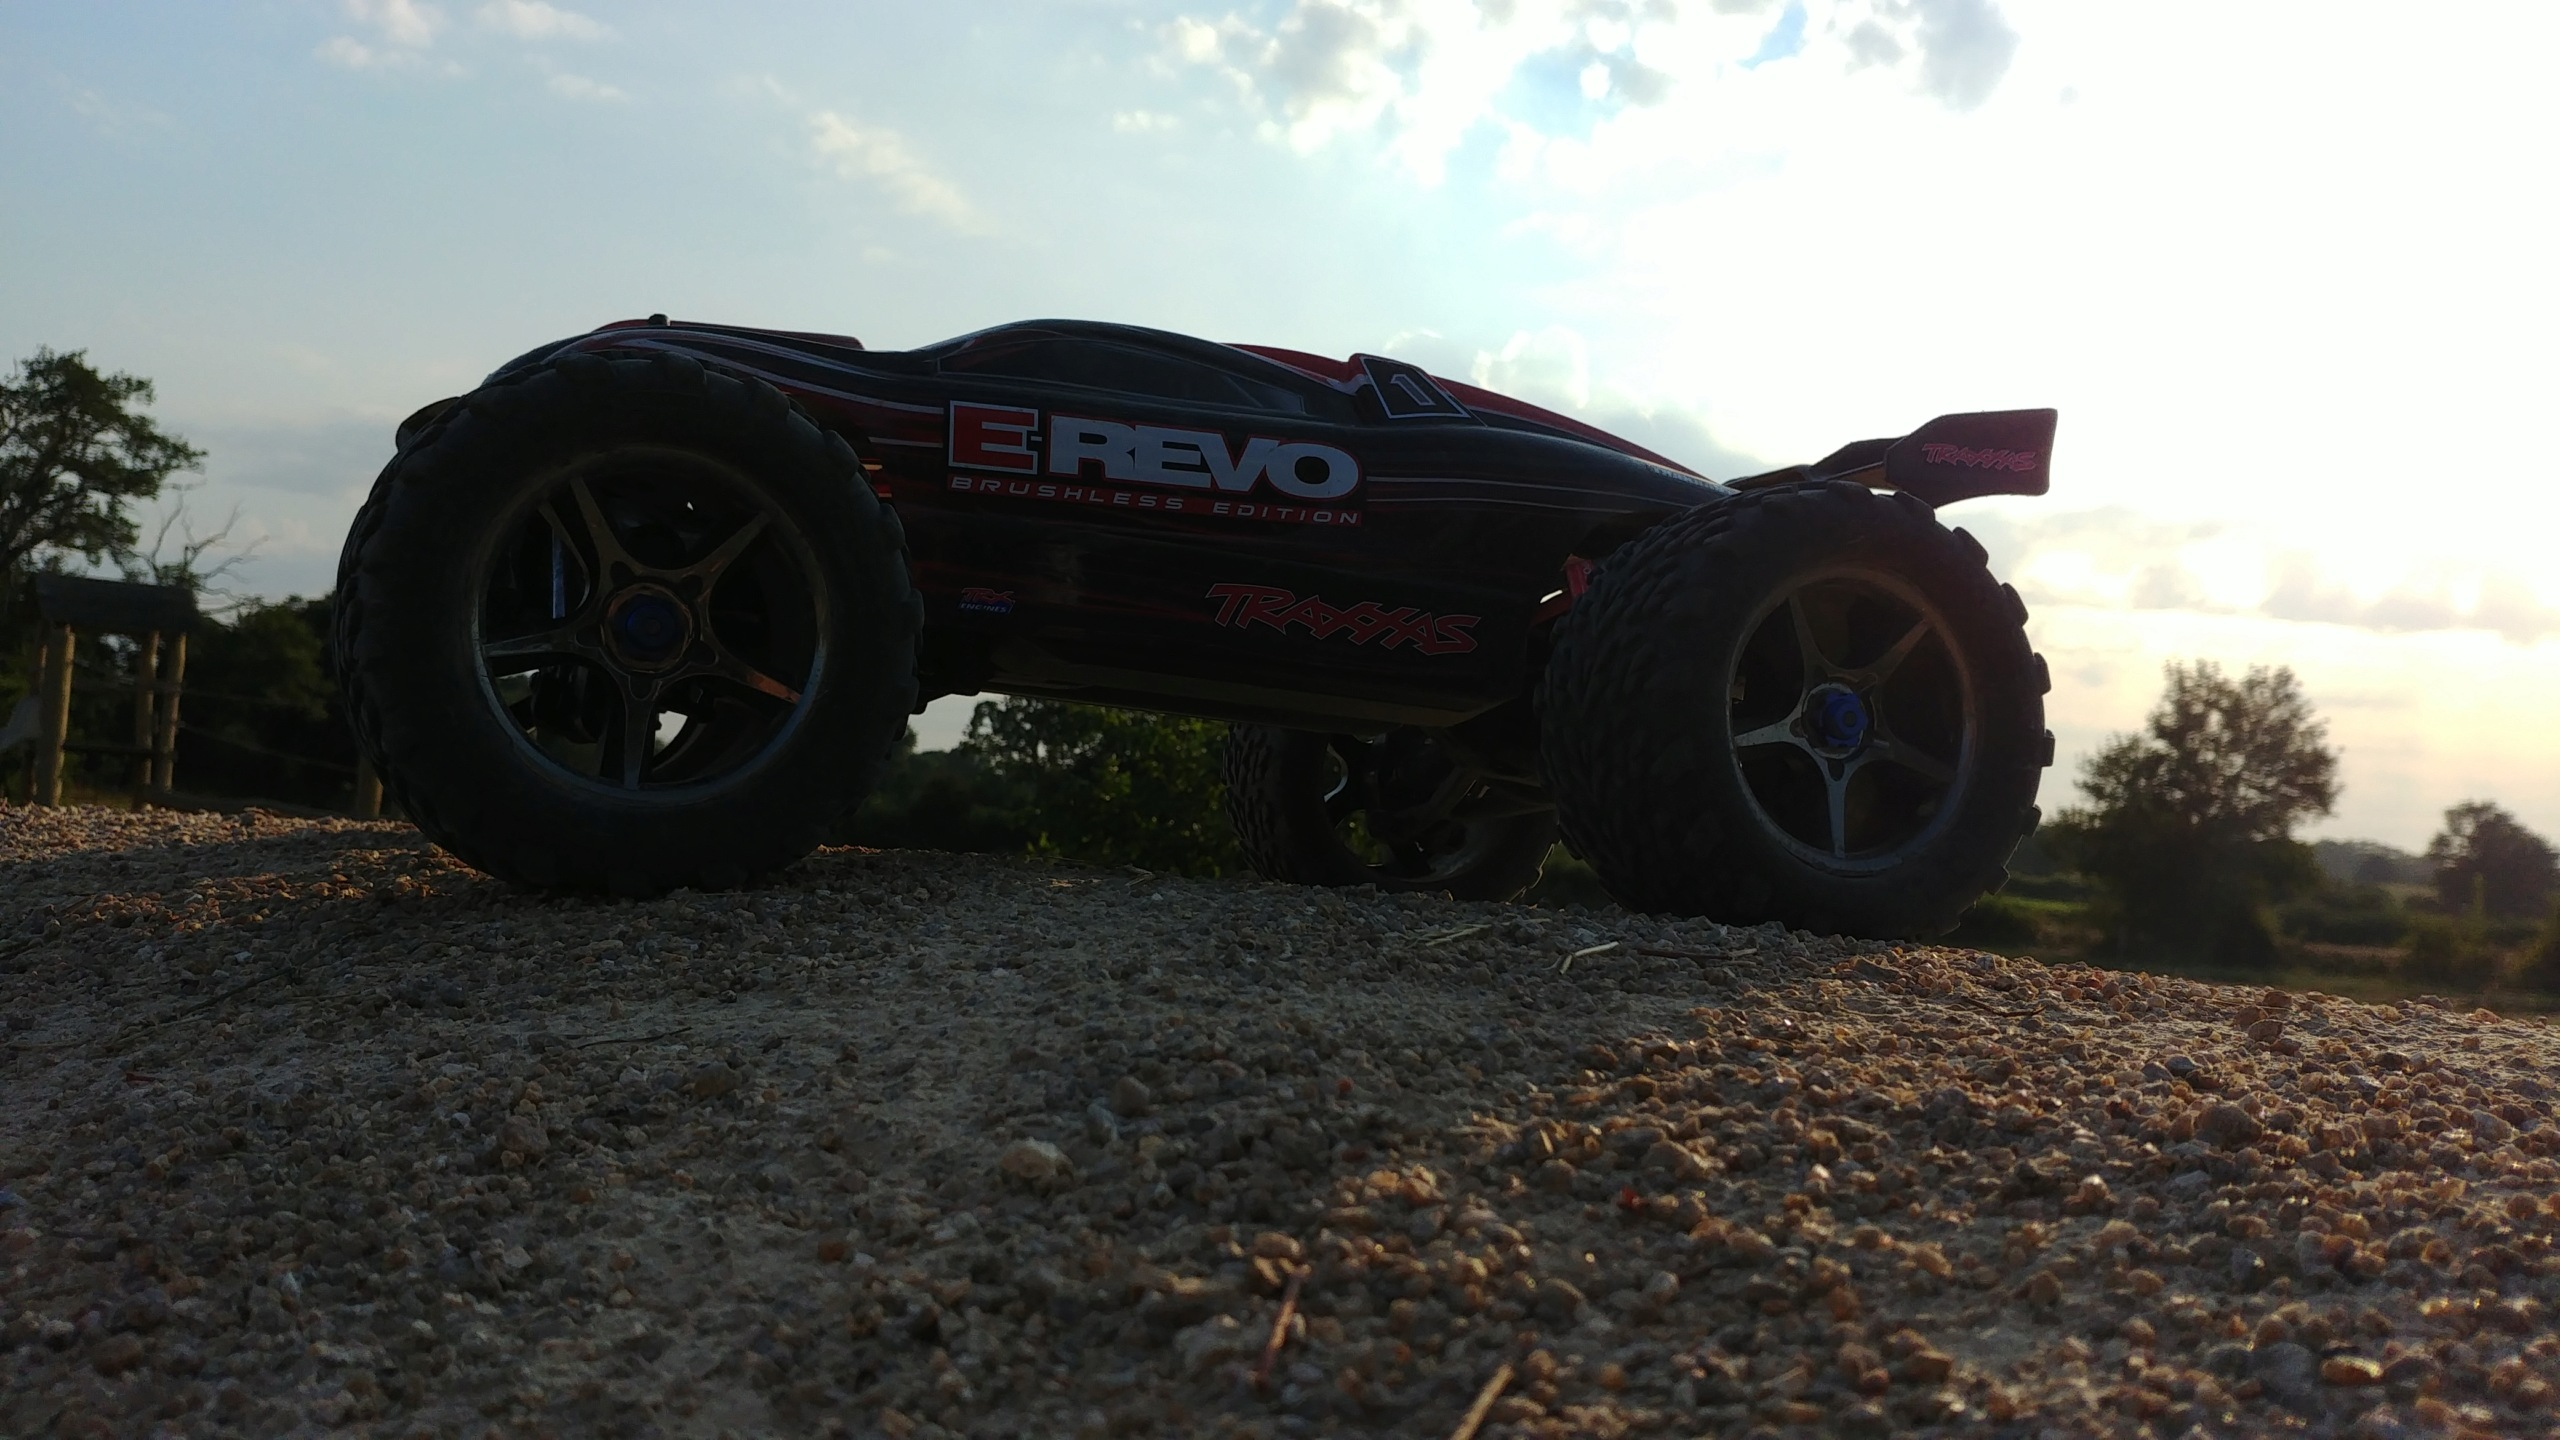 La E-Revo Brushless Edition d'ov4n - Page 2 20180720